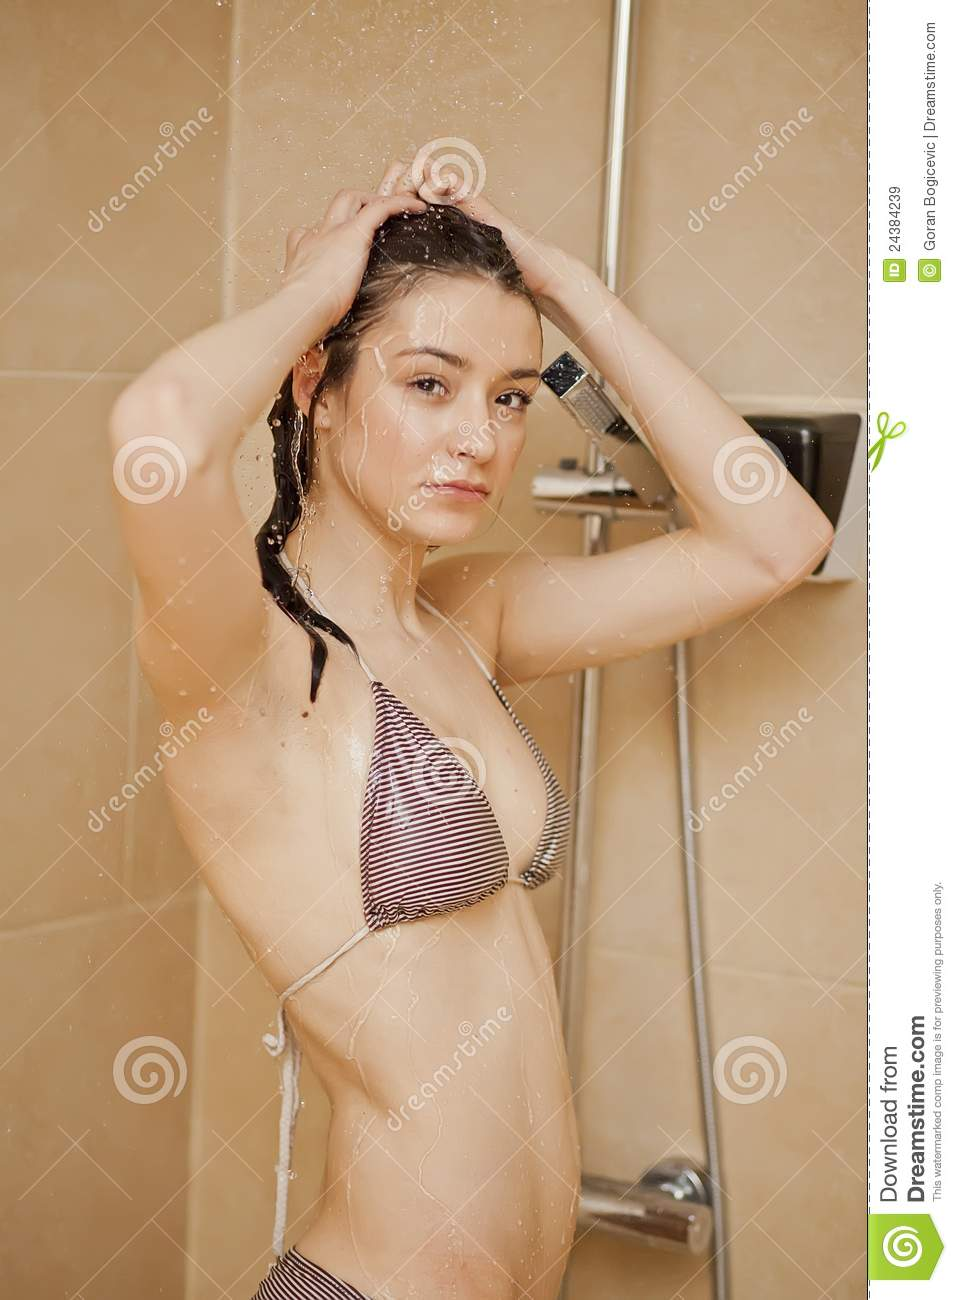 girls takeing a shower